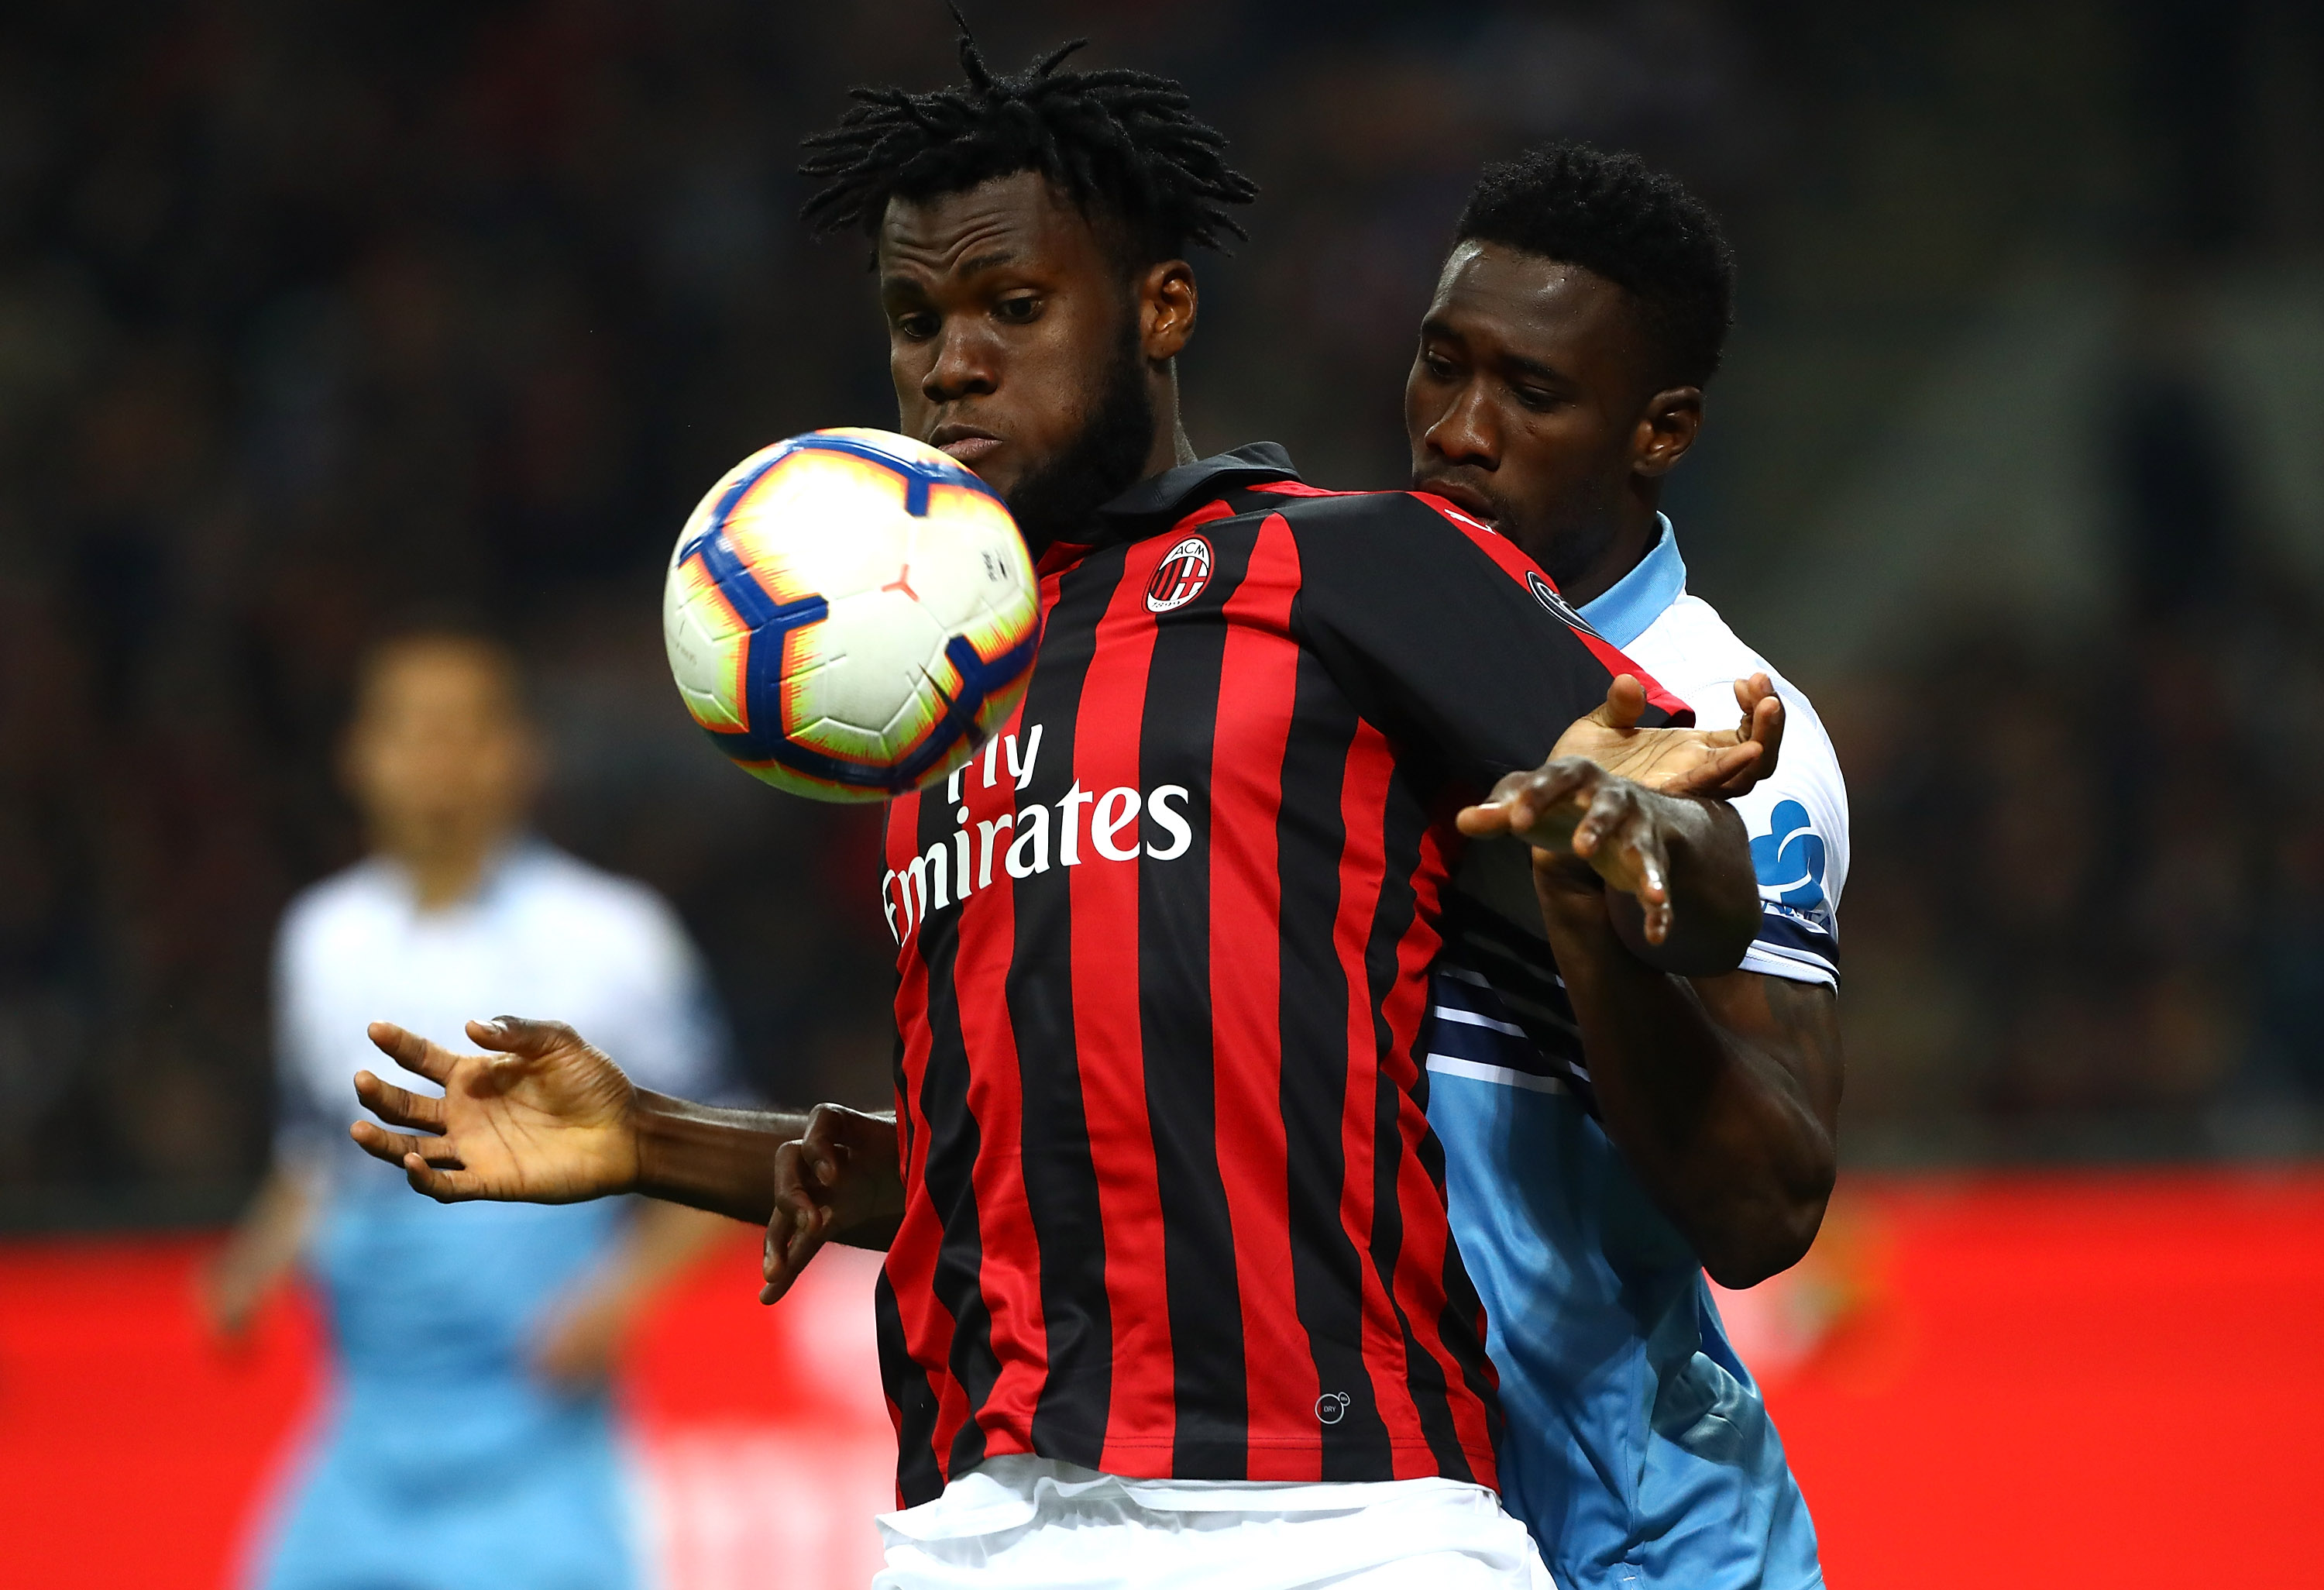 Journalist claims Kessie, who is seen in the photo, could attract interest from Newcastle